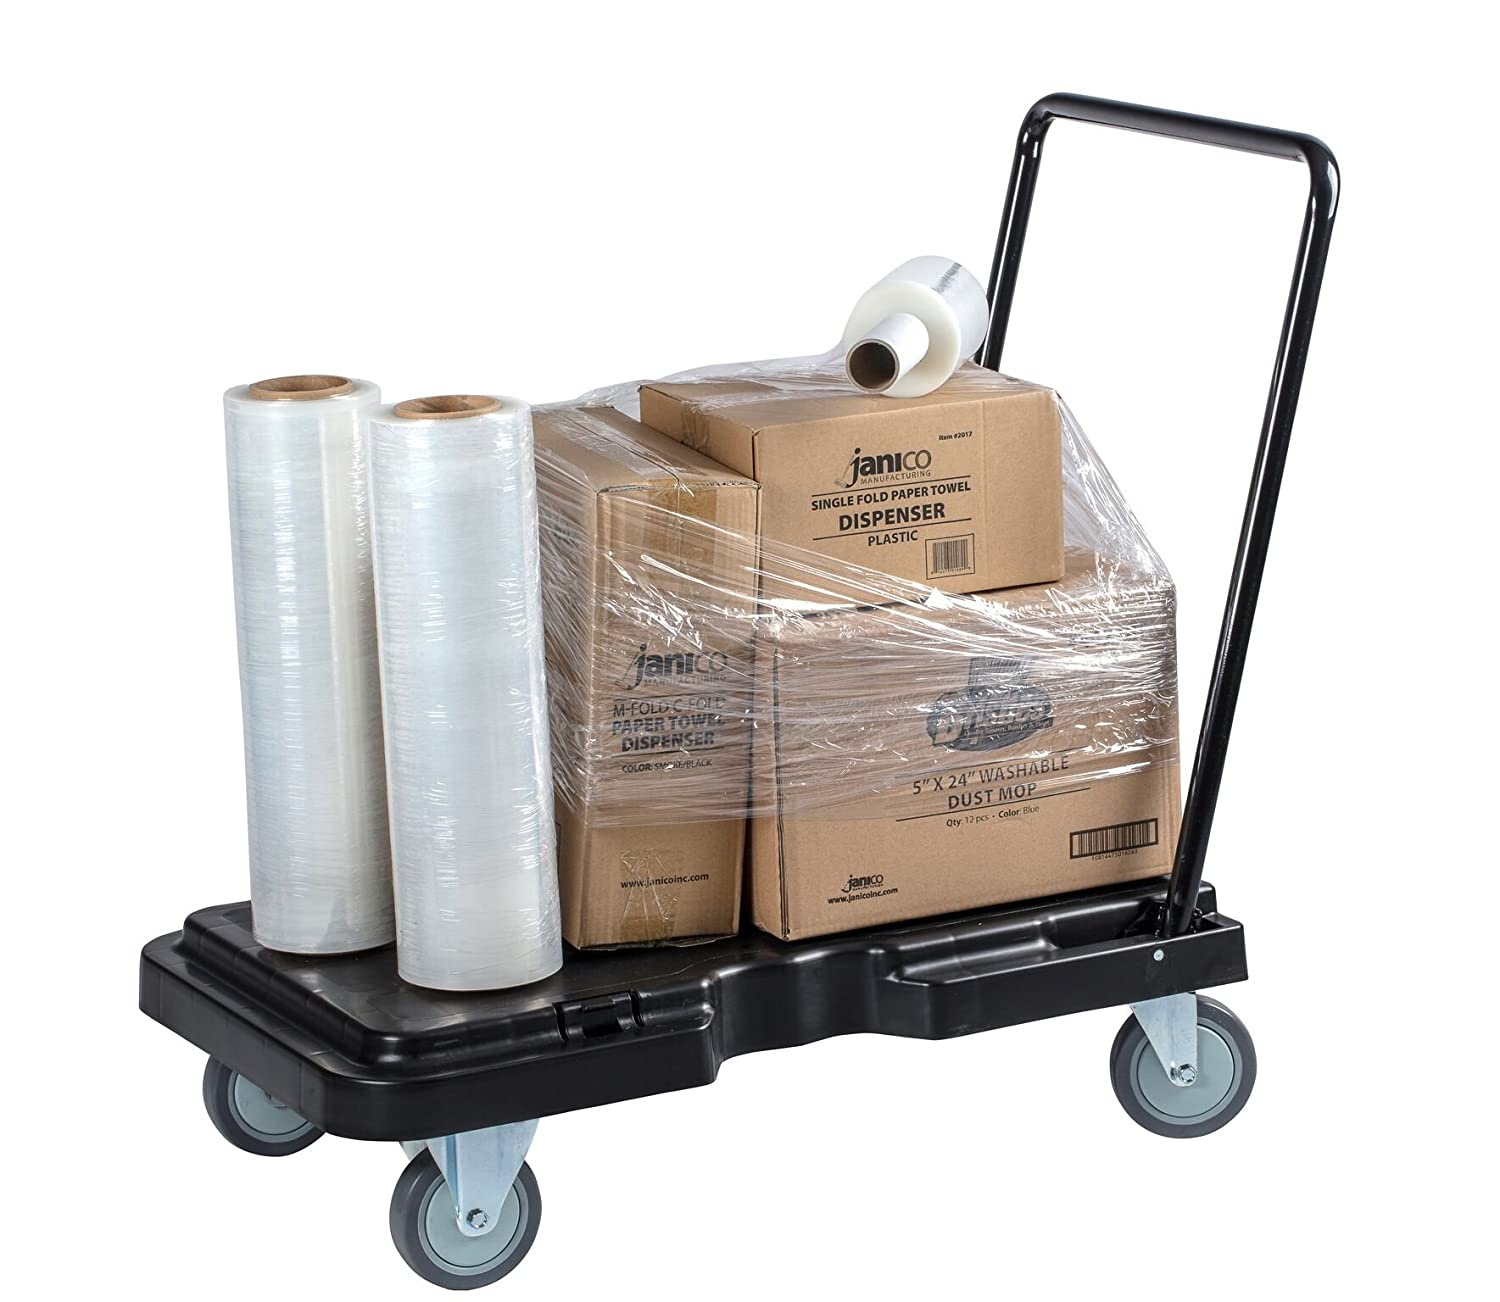 Industrial Dolly Foldable Moving Warehouse Push Hand Truck Black Janico 1059 Folding Platform Cart